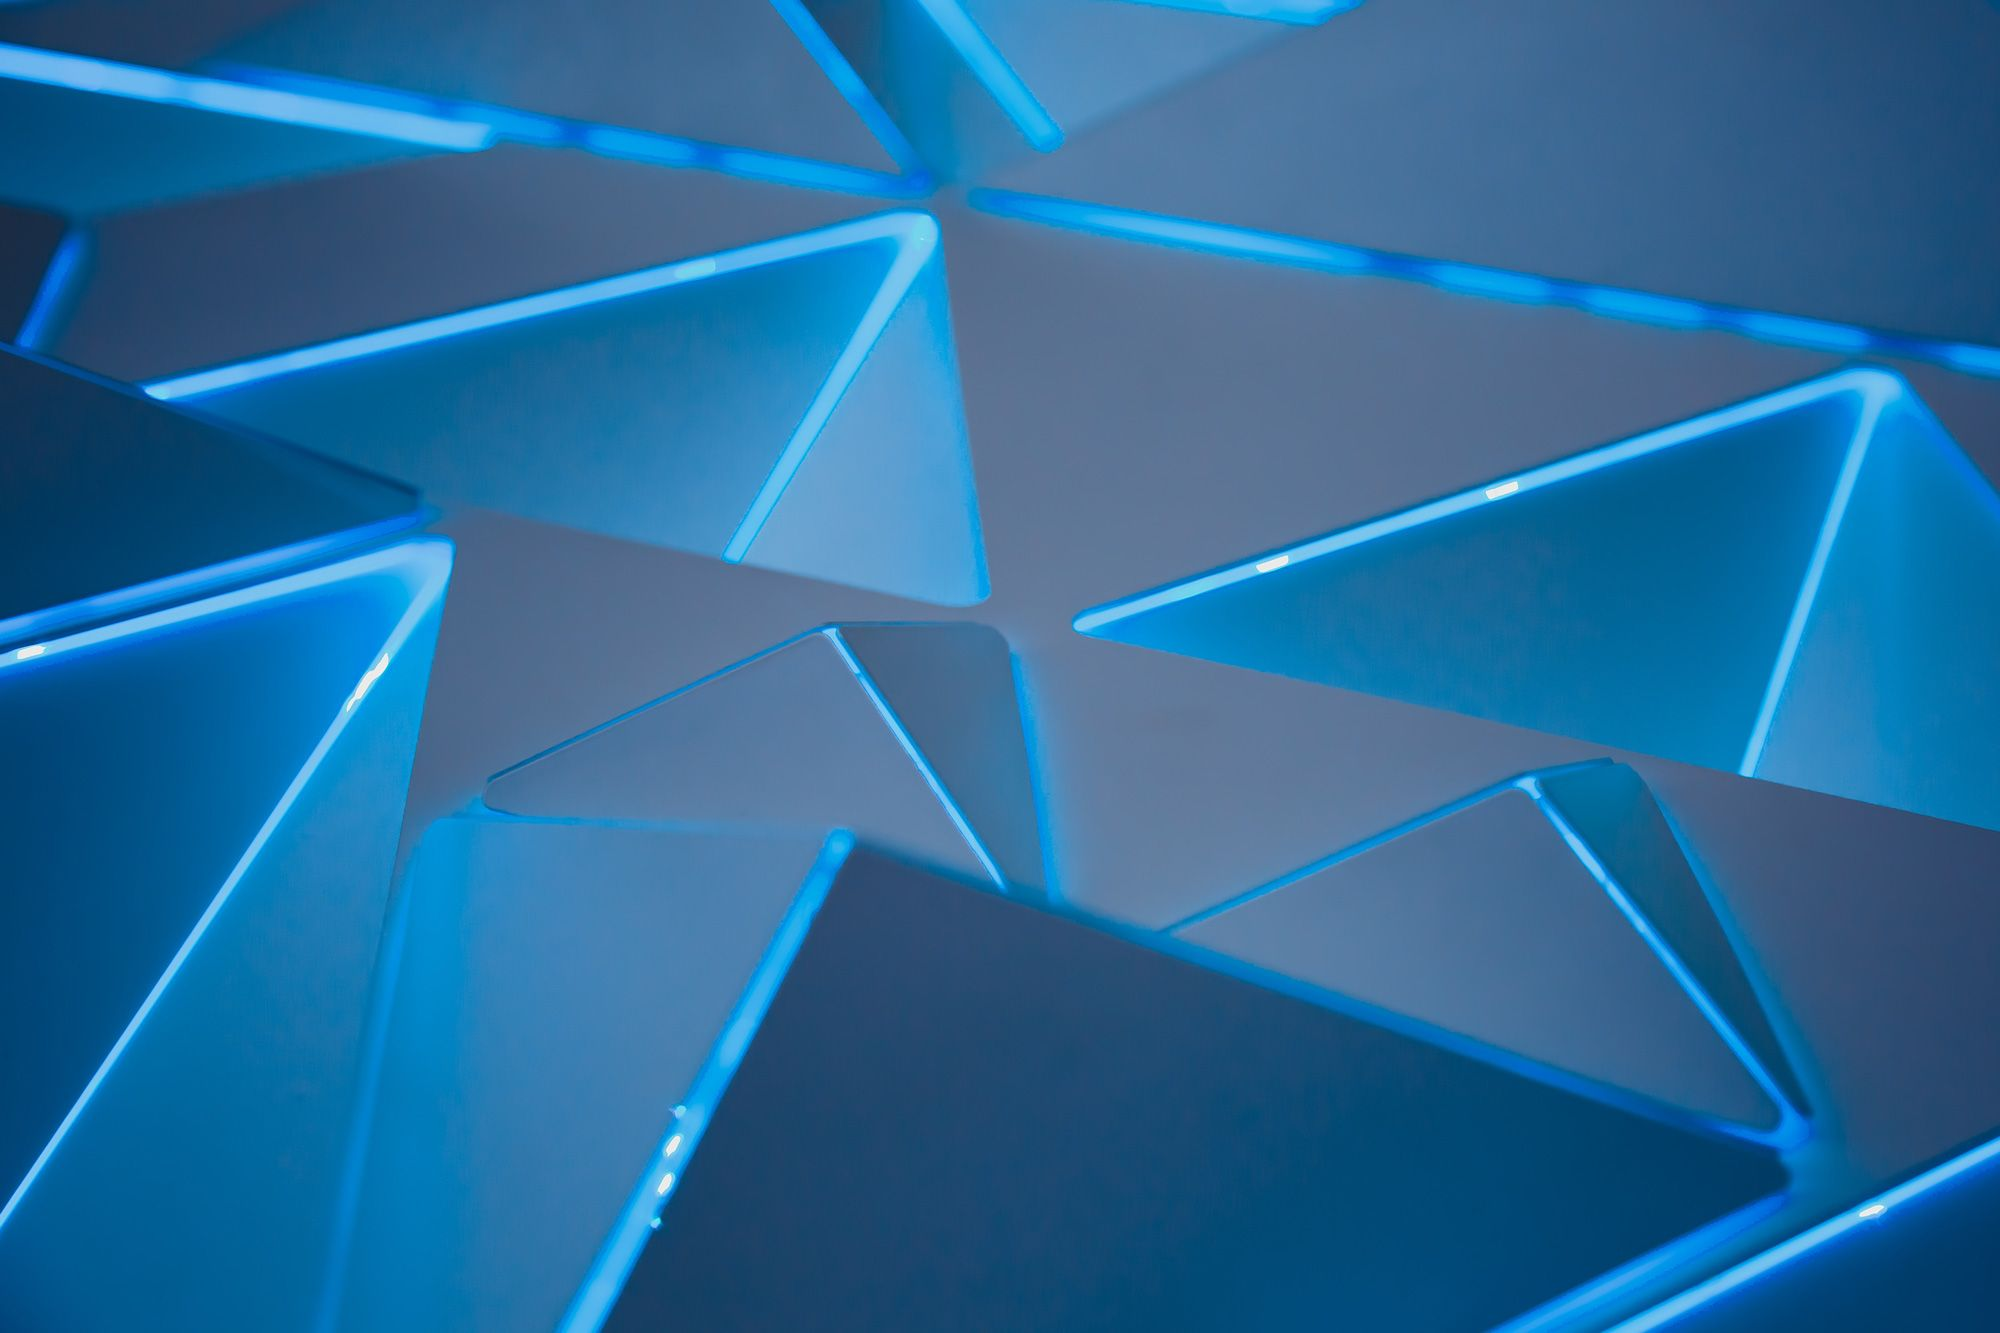 2000x1333 5 Days of Awesome Wallpapers: Geometric Wallpapers - TechSpot